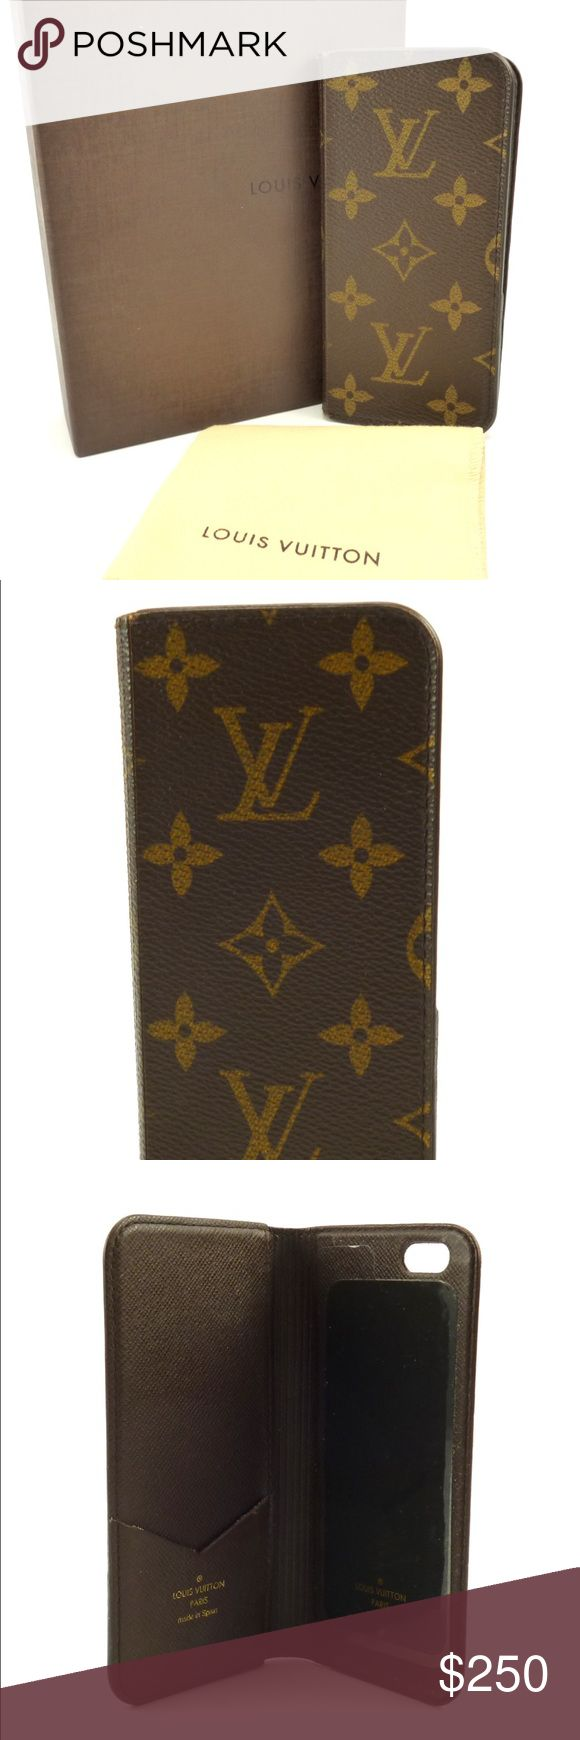 Louis Vuitton Auth iPhone 6/6s Monogram Folio Case Iconic Louis Vuitton Monogram Canvas flip case for the iPhone 6 or 6s. The function adhesive surface holds your phone securely in place with an interior pocket to hold cards or bills. In wonderful condition and comes with original LV box and dust cloth. Guaranteed Authentic. Date Code: BC4125 (Spain 2015) Please feel free to ask any questions. Sorry no trades. 103350 Louis Vuitton Accessories Phone Cases